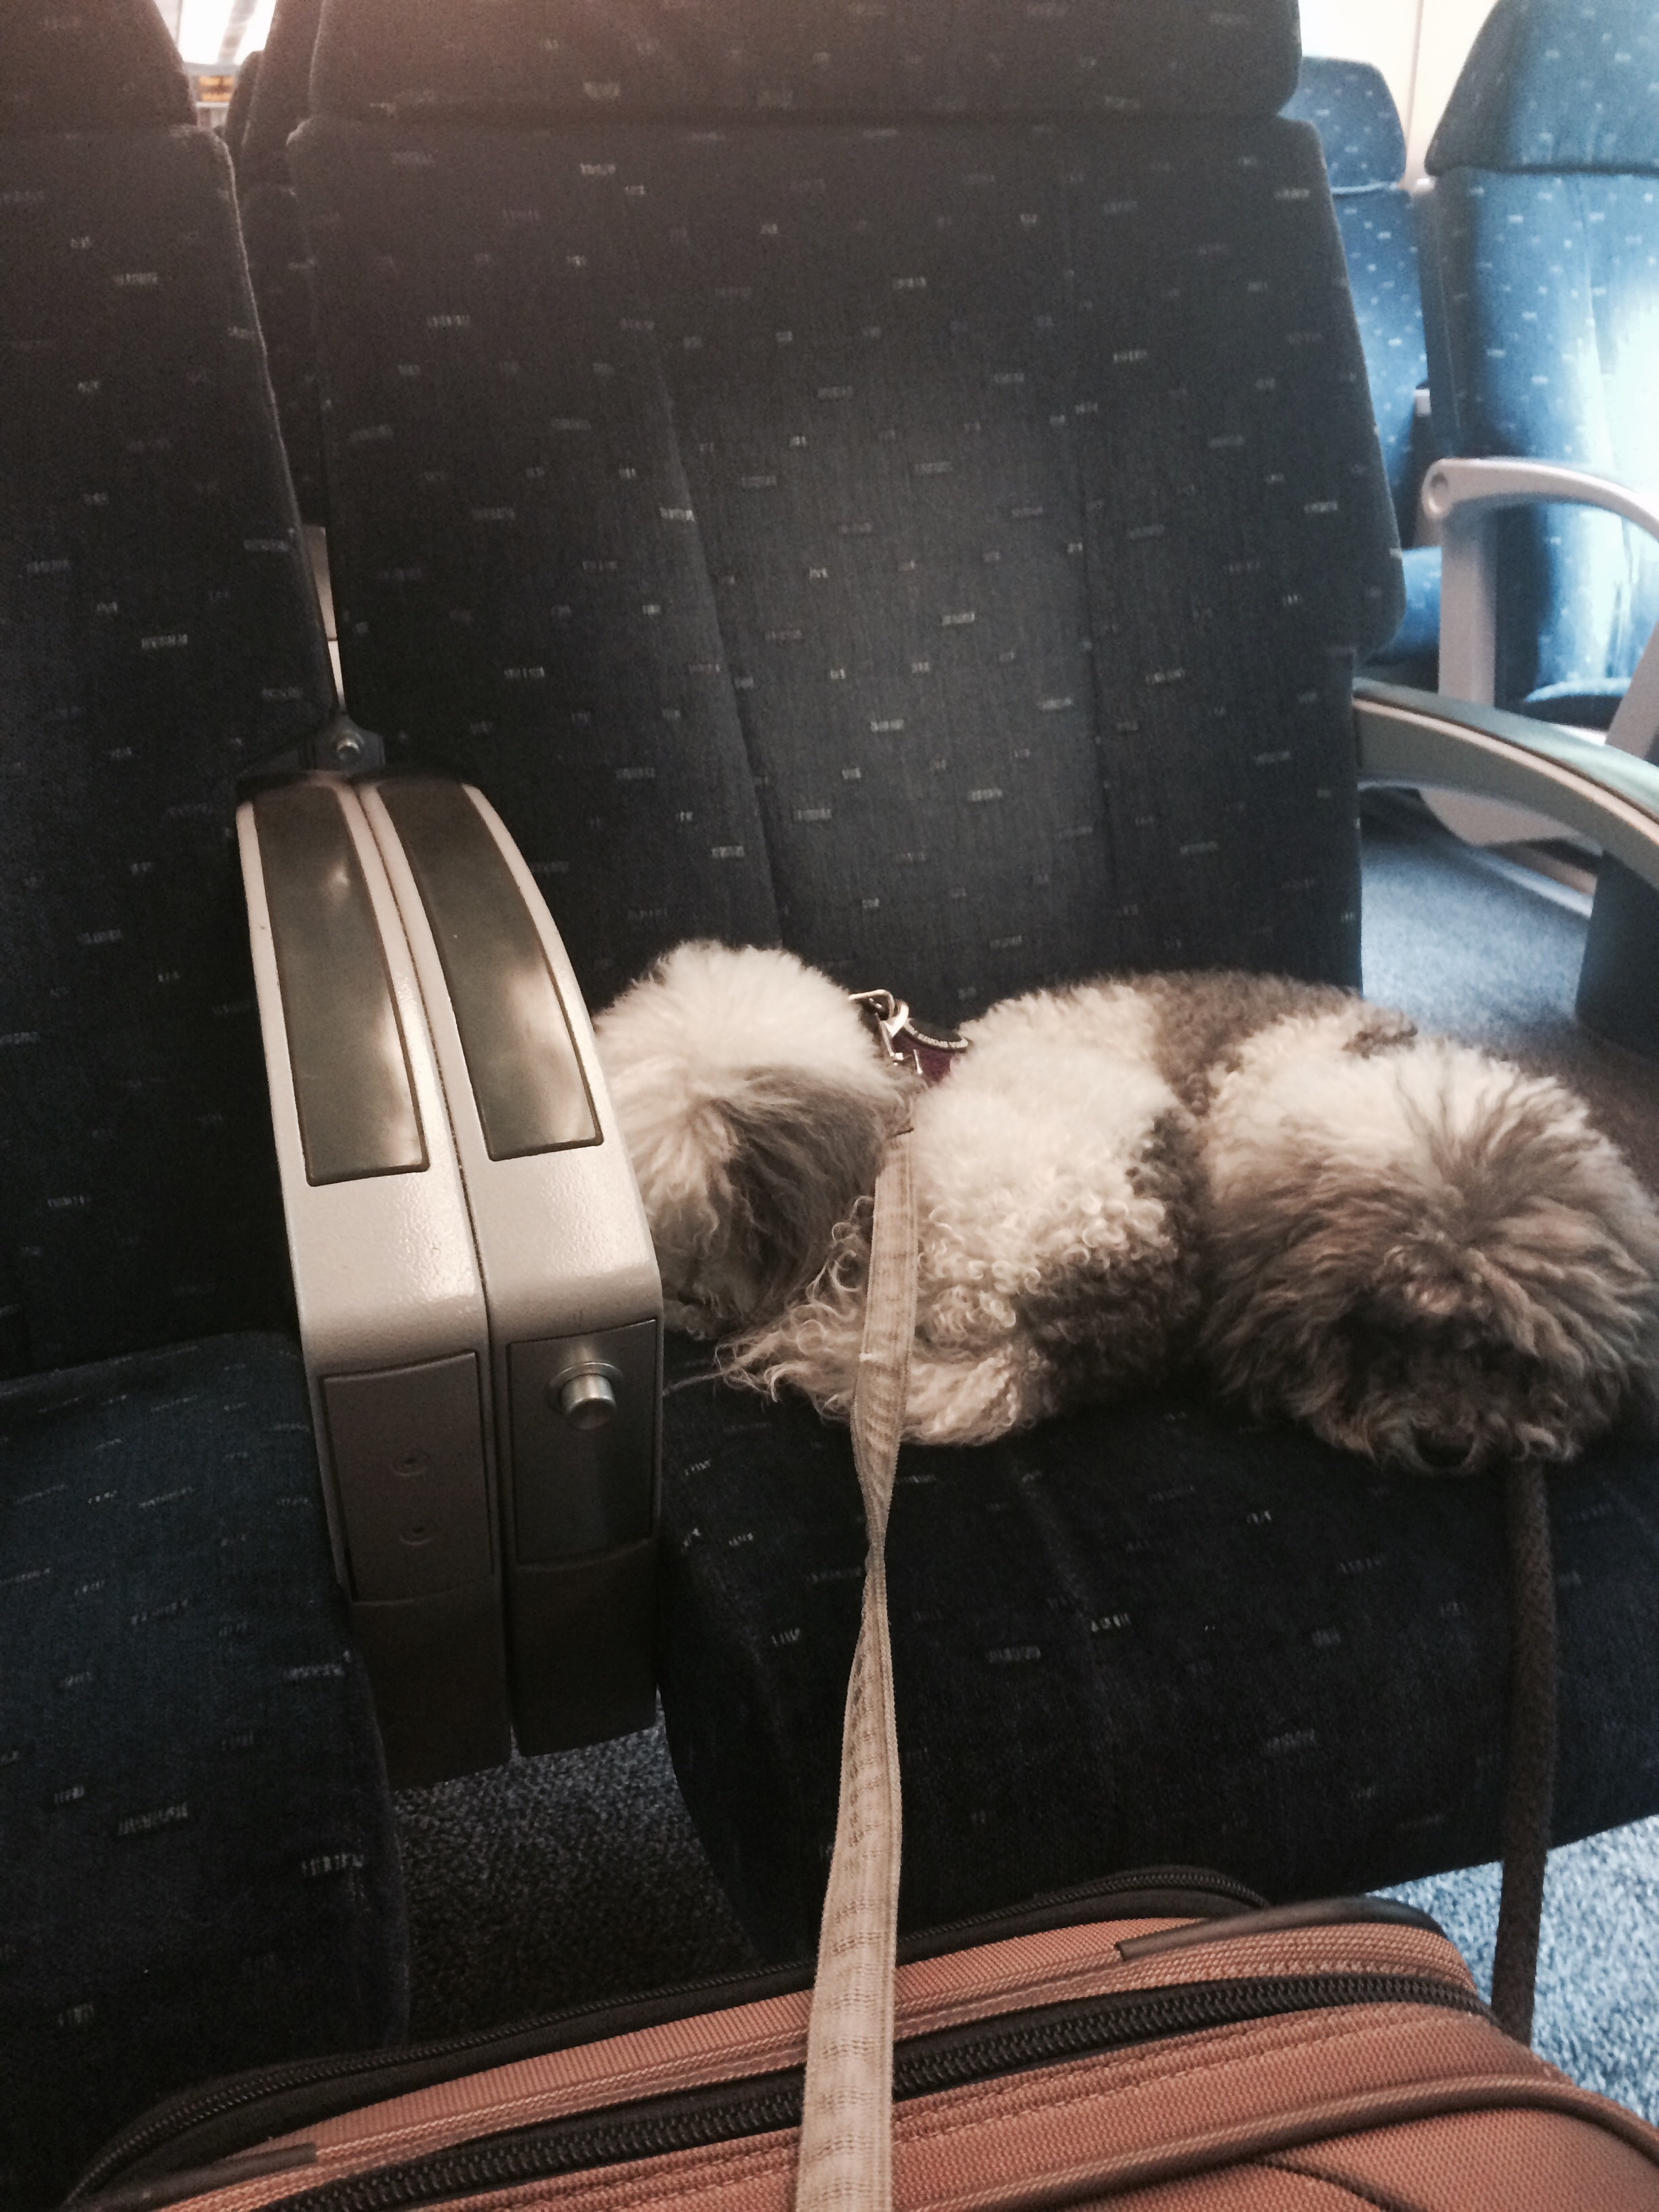 European  travel is not only civilized, it's dog friendly